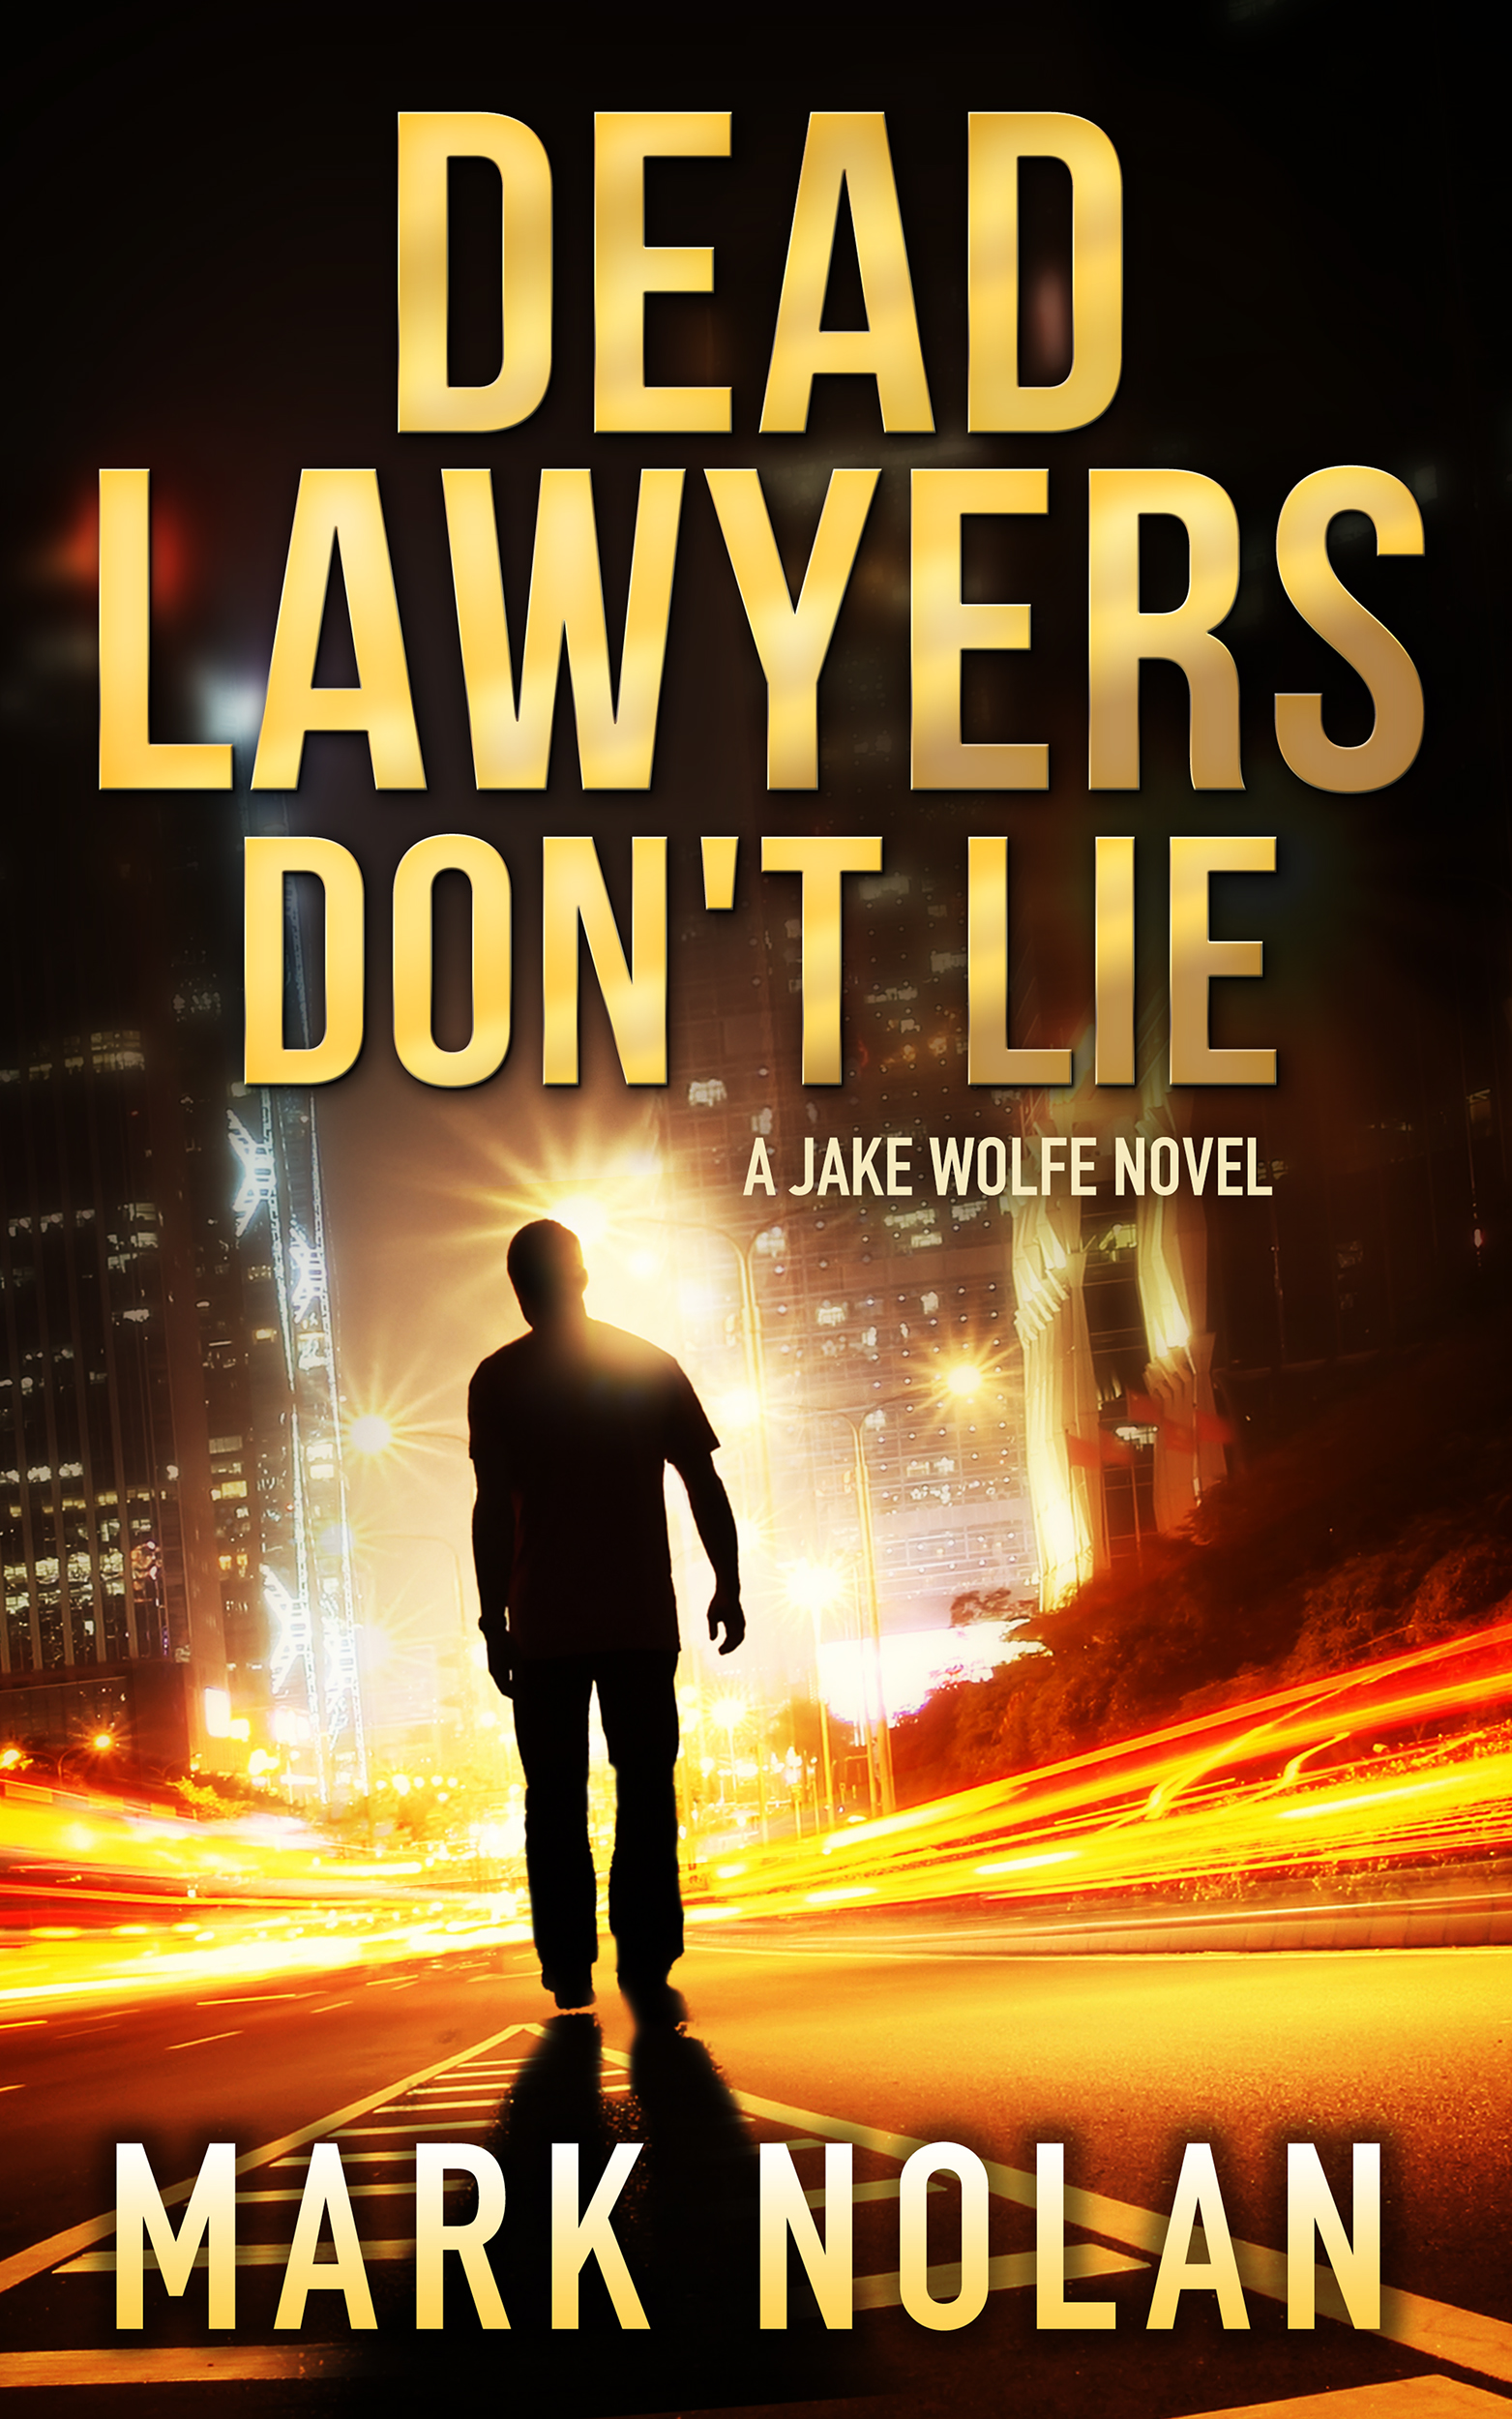 Dead-Lawyers-Dont-Lie-Kindle | Best Thriller Books and Thriller Book